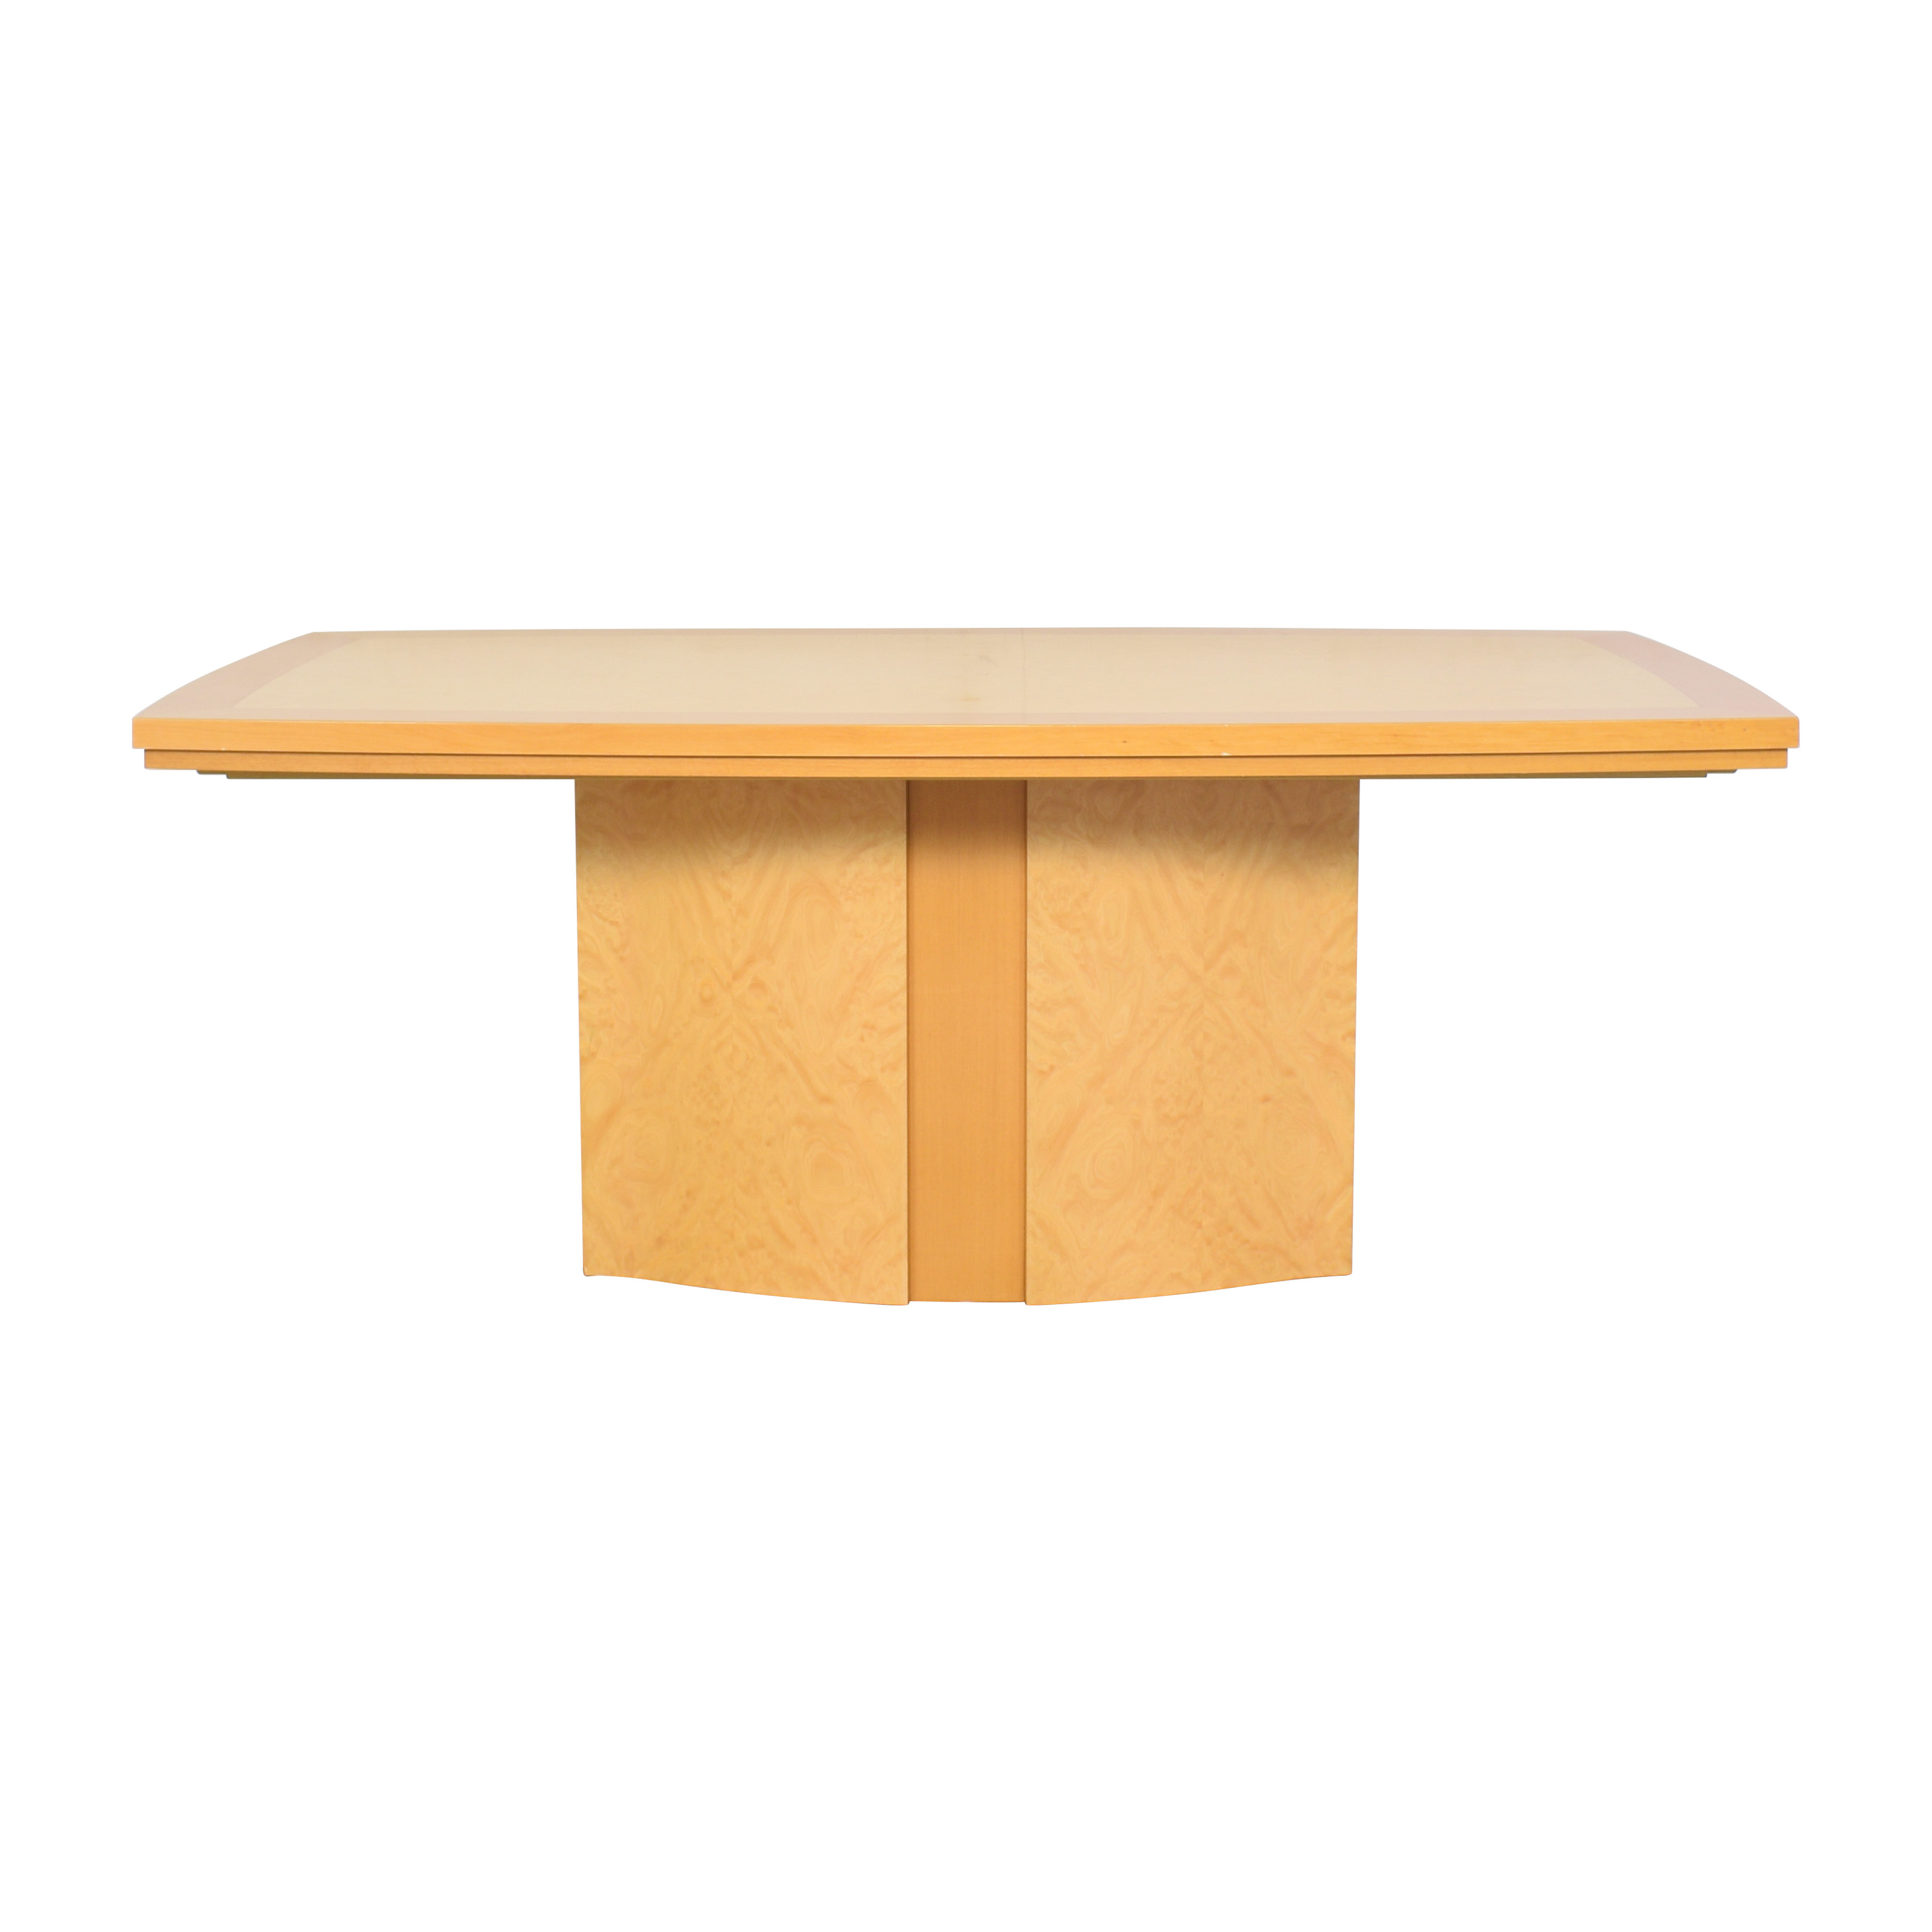 Excelsior Designs Excelsior Extending Dining Table nyc